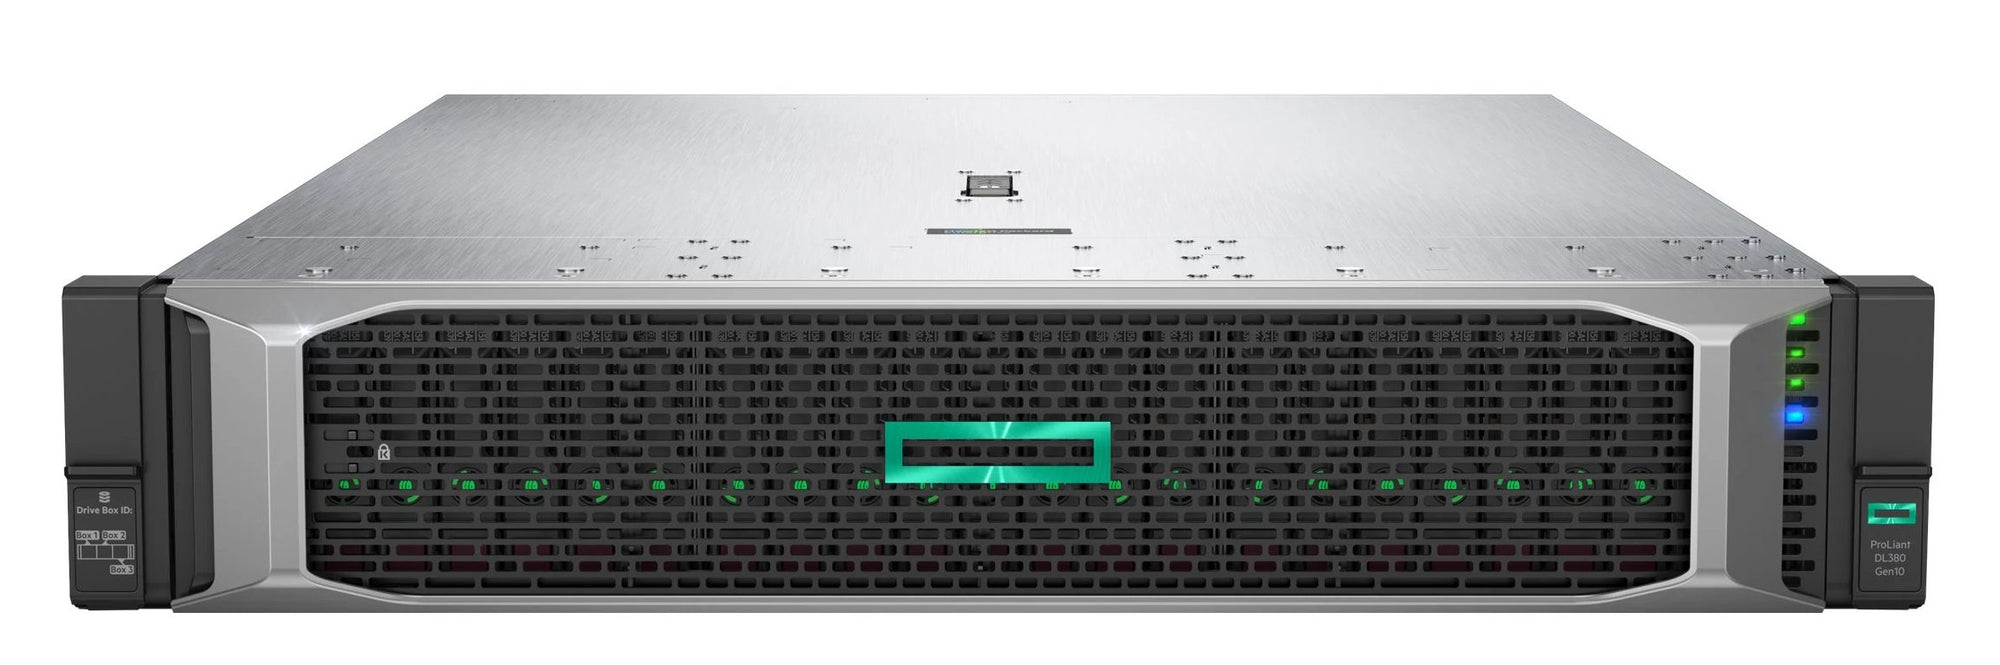 Refurbished HPE ProLiant DL380 Gen10 Configure to Order Rack Server